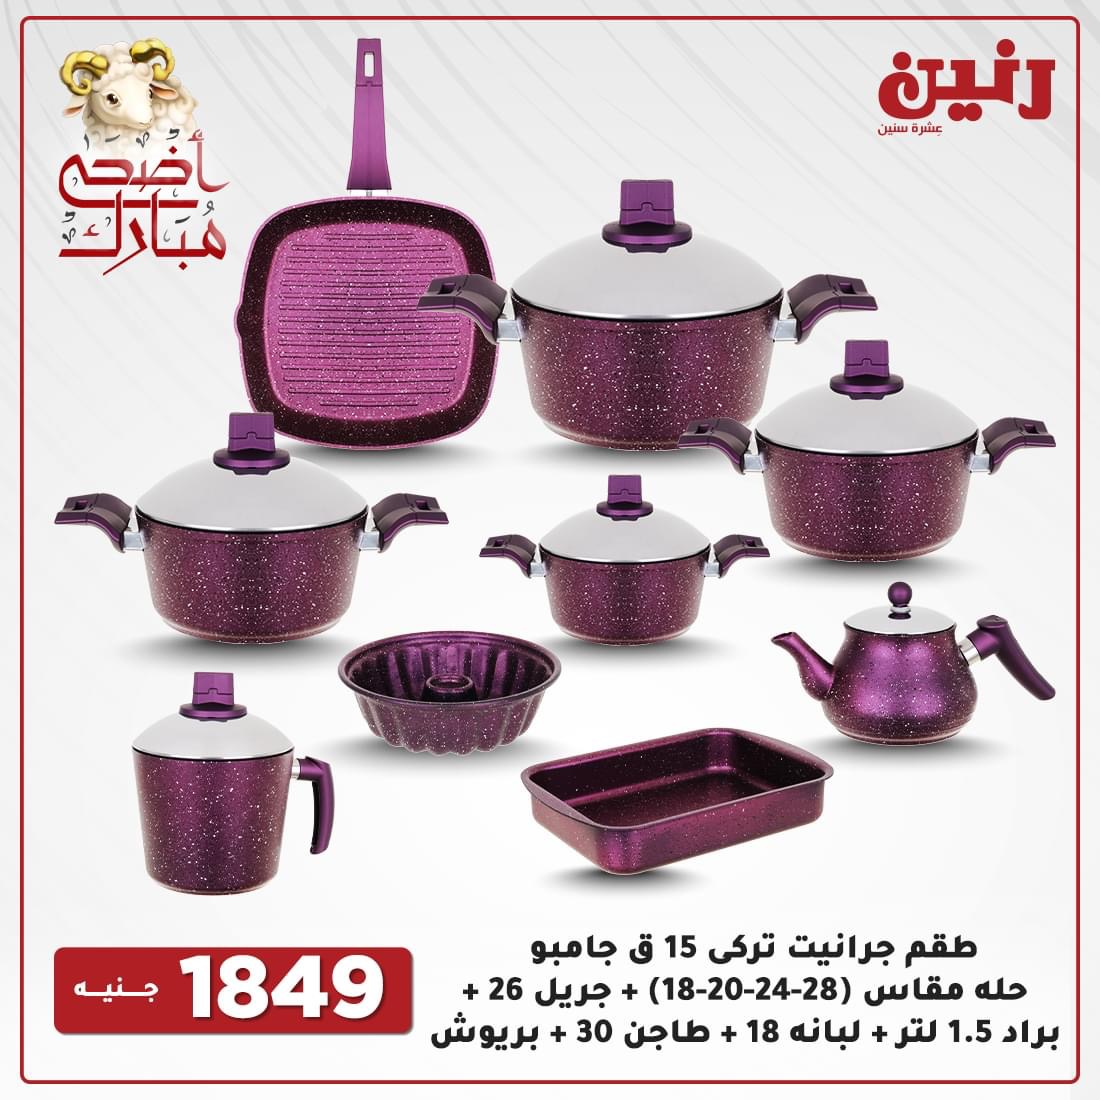 Raneen offers today for appliances and household appliances from July 22 to 24, 2021 34